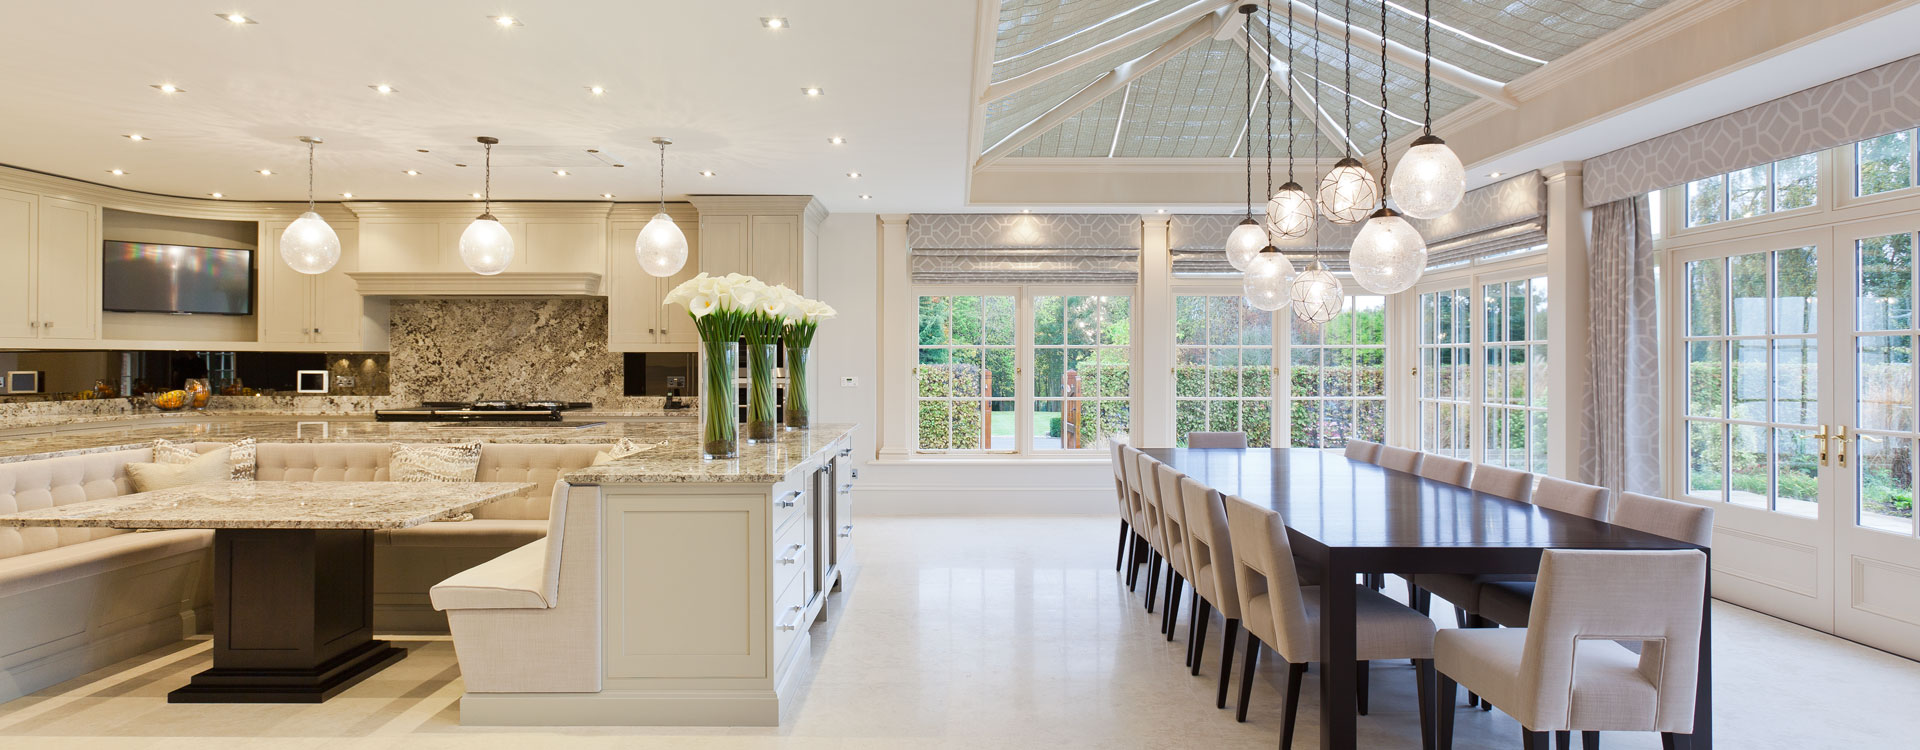 Kitchen conservatories and orangeries - Stylish cooking ...